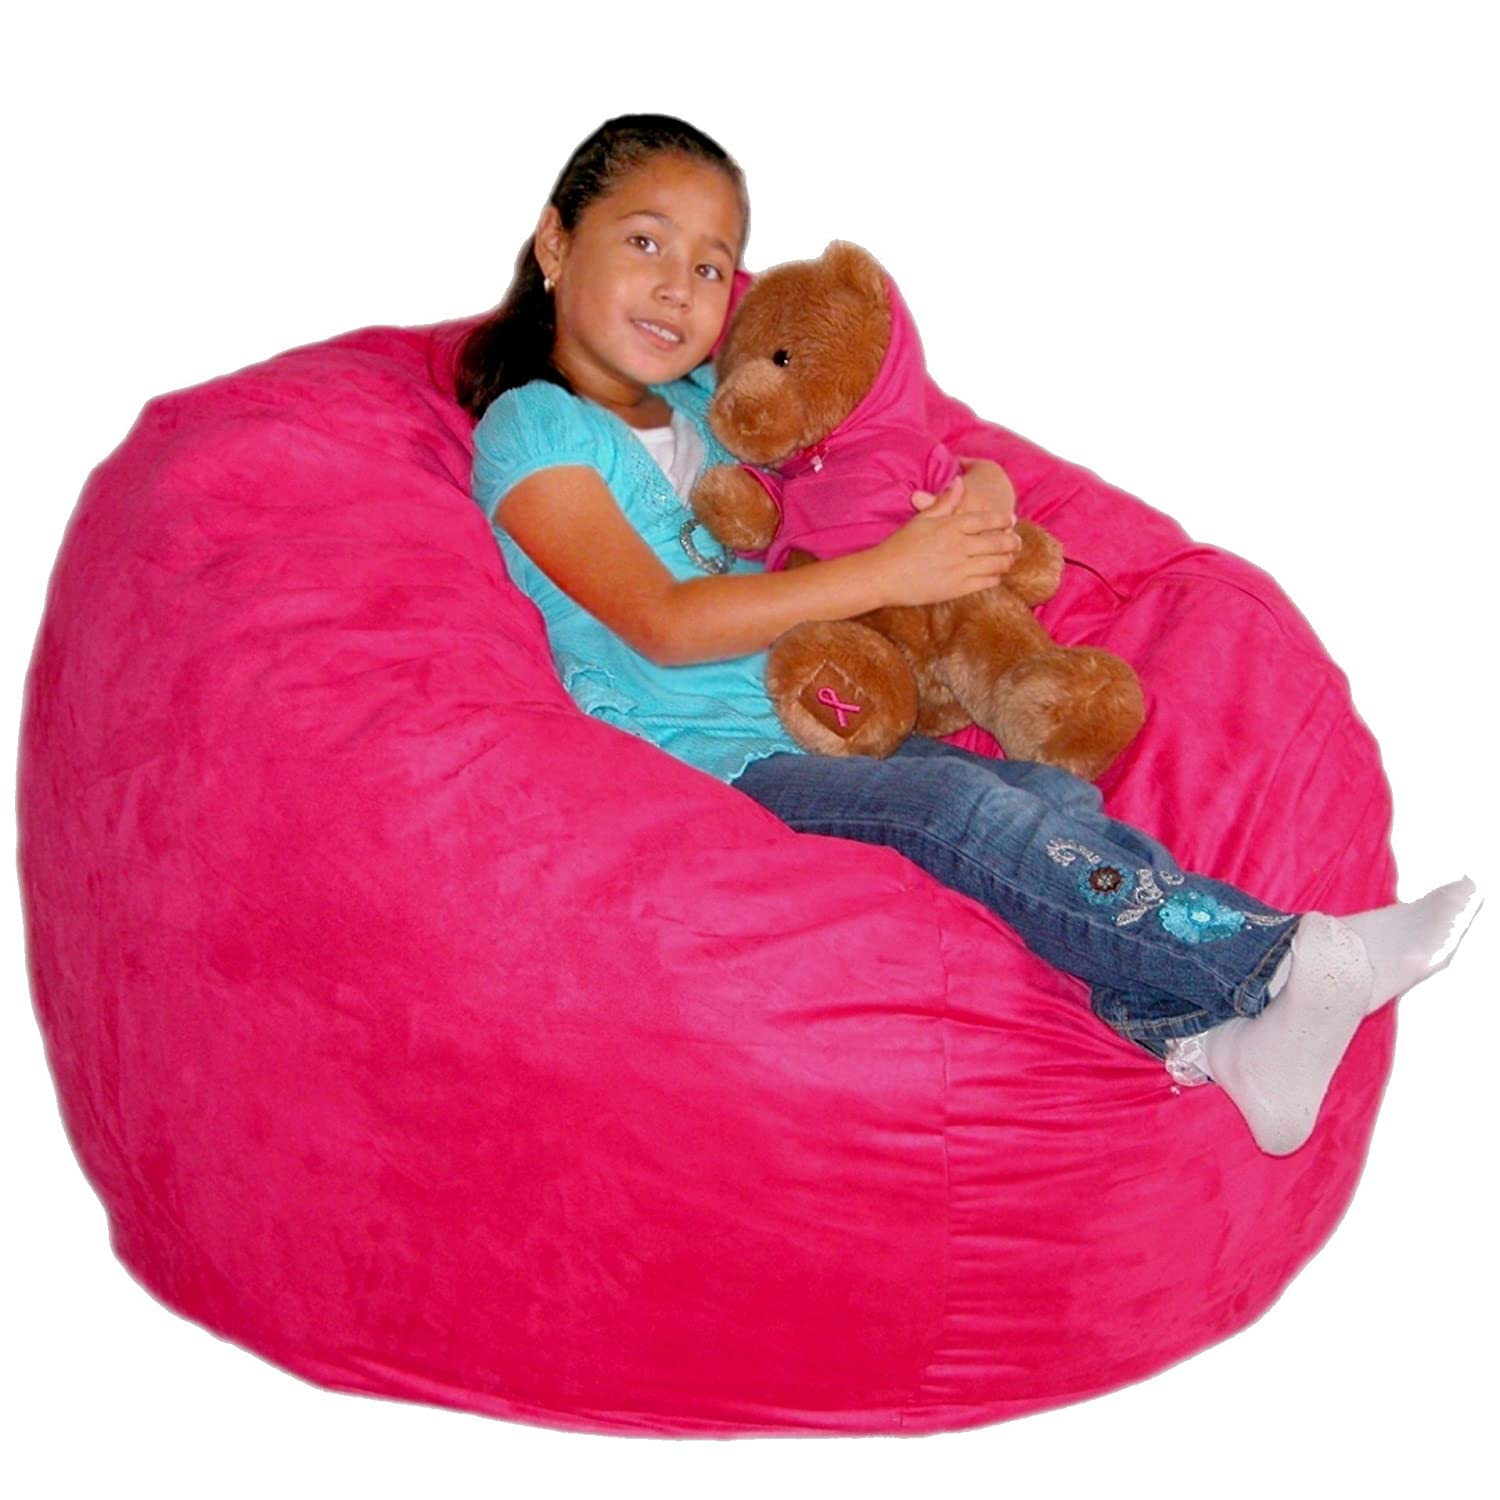 Amazon.com: Cozy Sack 3 Feet Bean Bag Chair, Medium, Hot Pink: Kitchen U0026  Dining